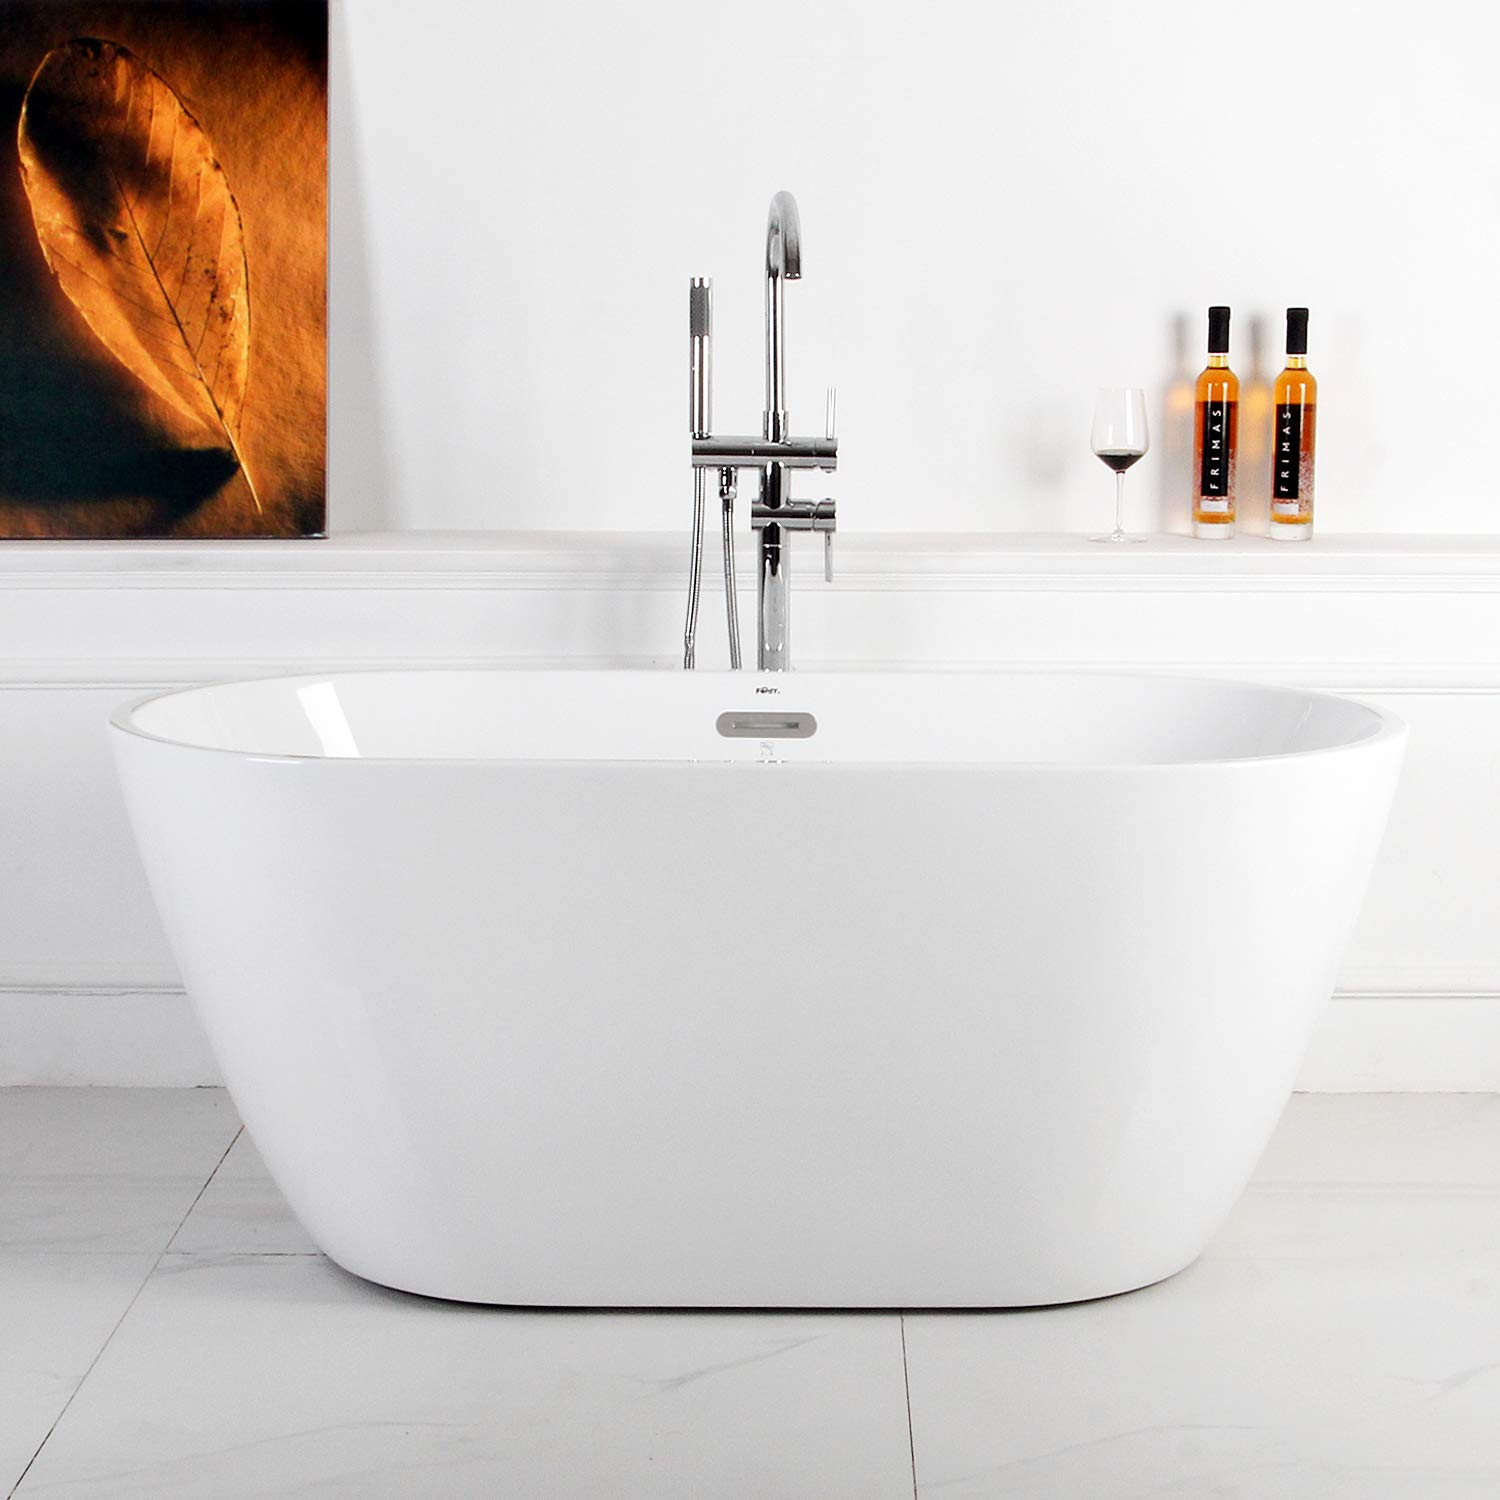 FerdY 55 Small Gracefully Shaped Freestanding Soaking Bathtub, Glossy White 2019 All New Oval, cUPC Certified, Drain Overflow Assembly Included